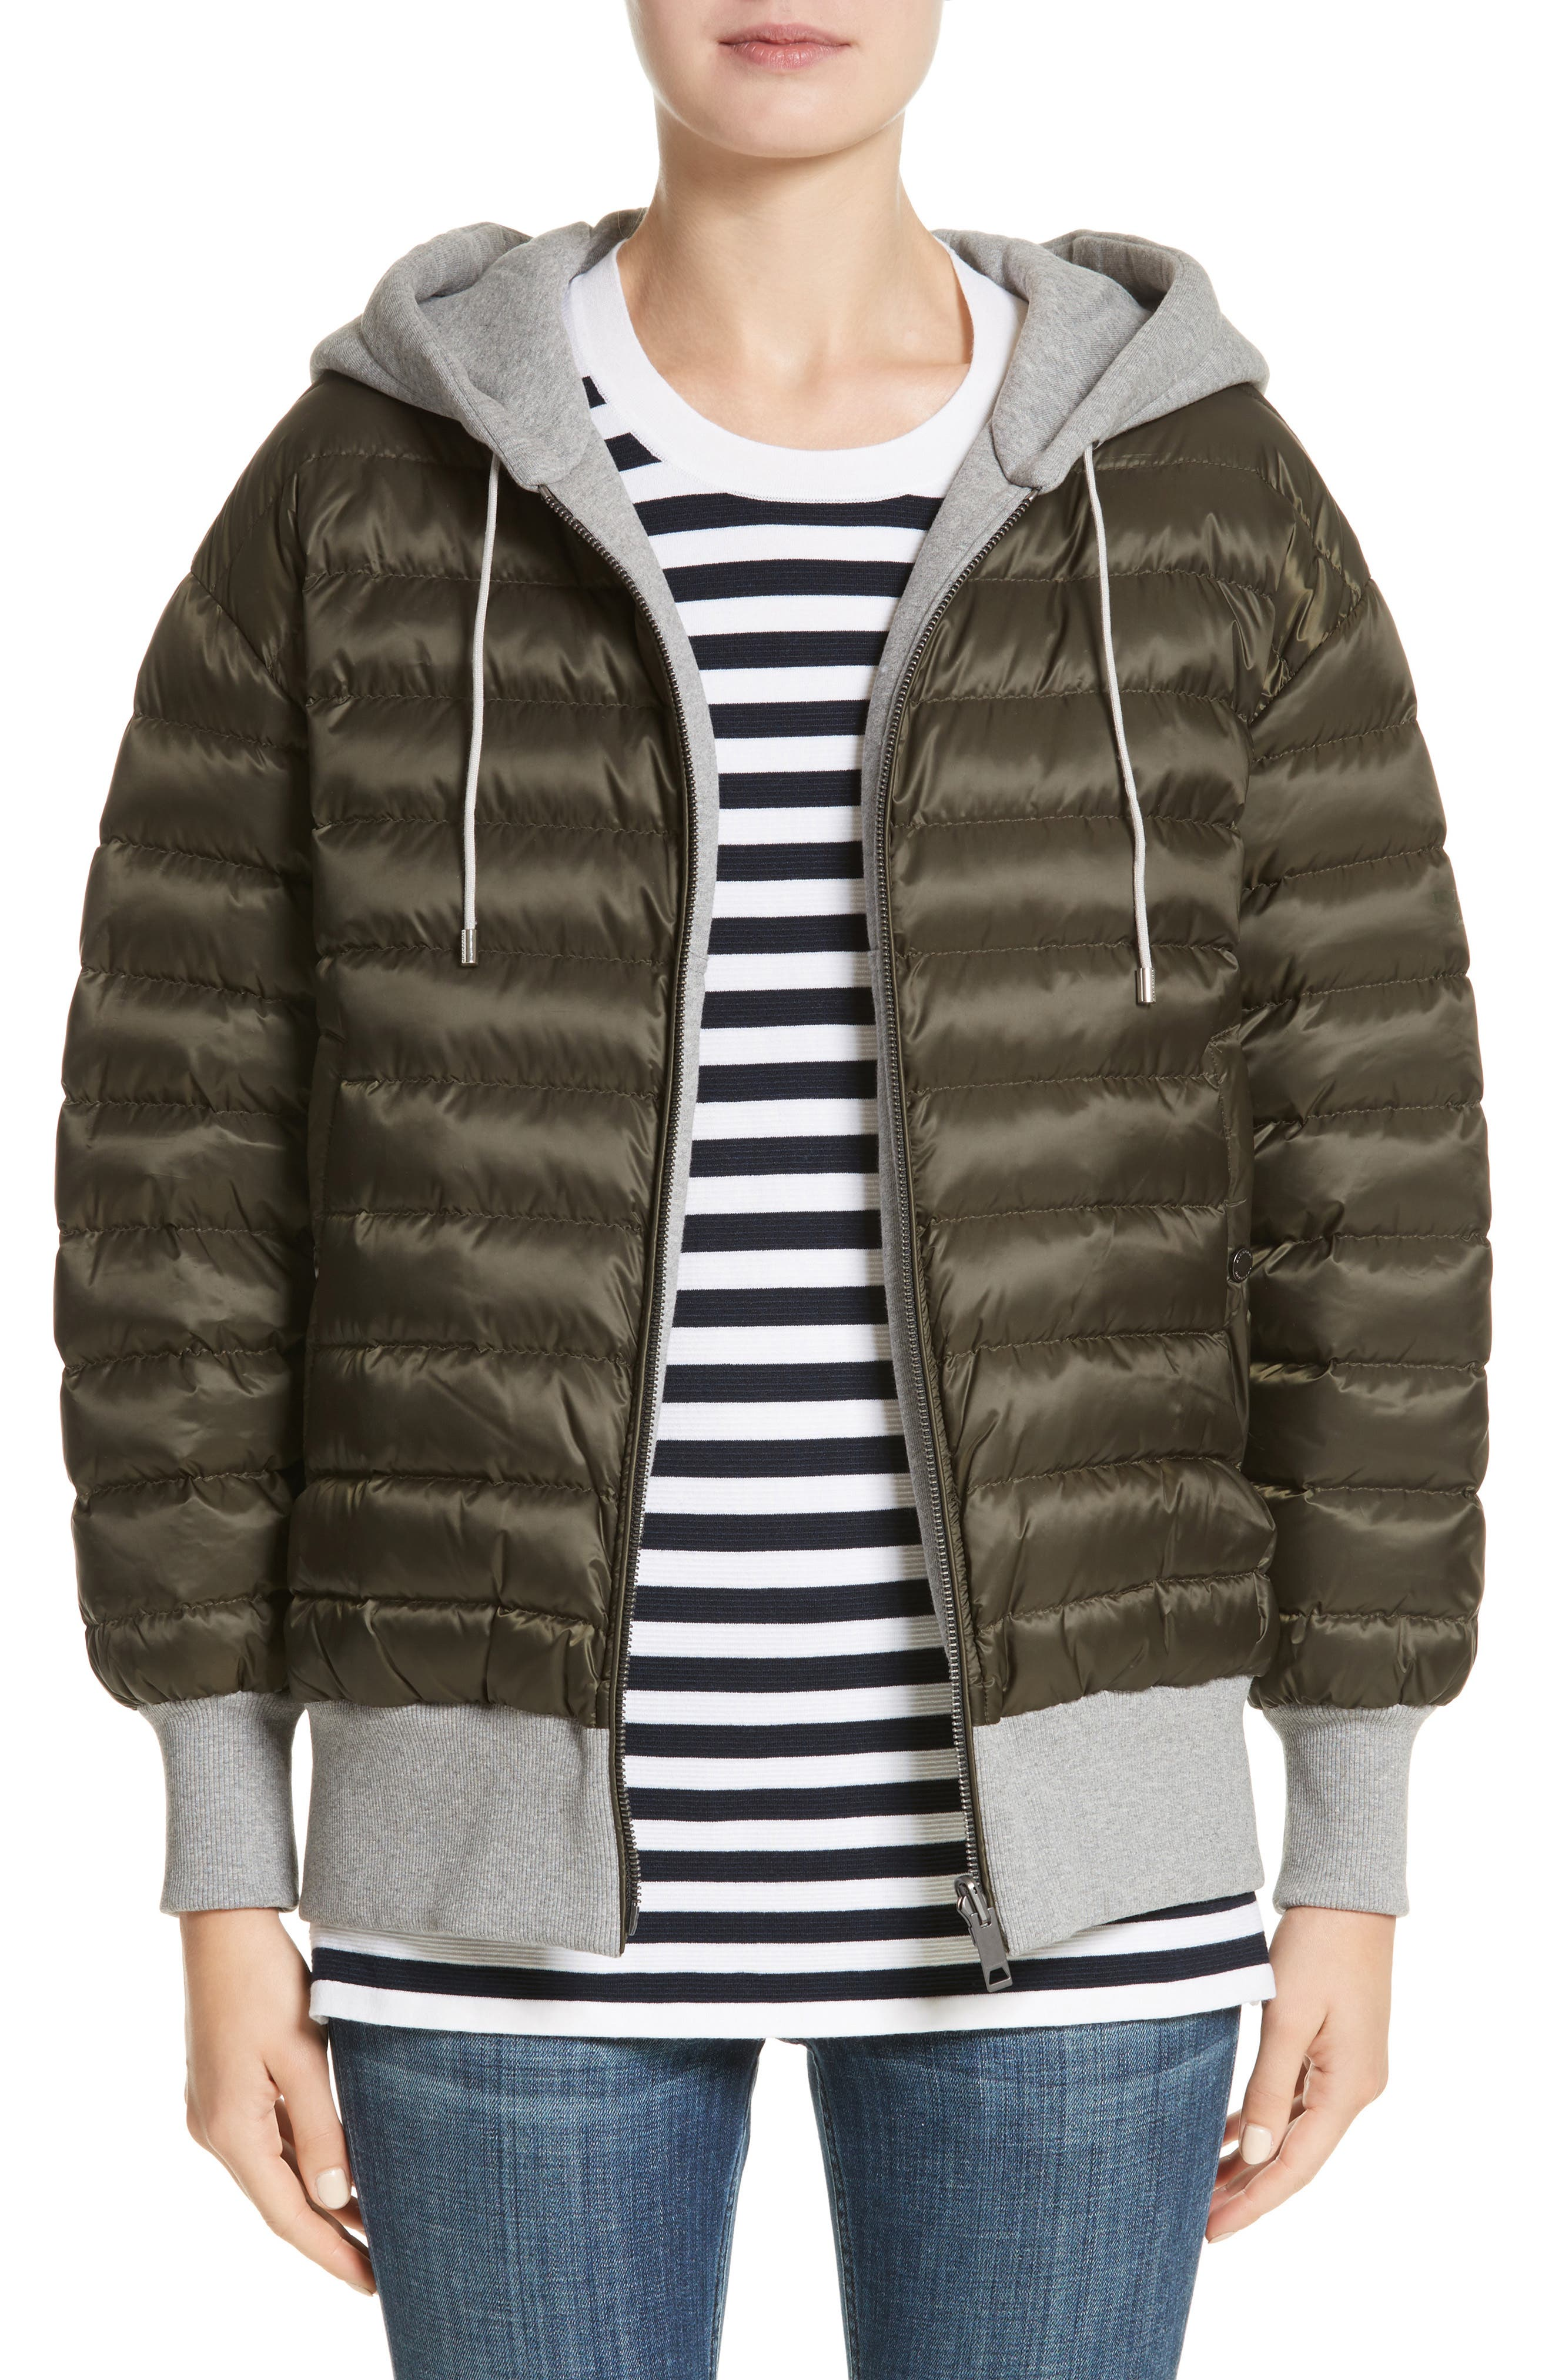 Langleigh Reversible Down Hooded Bomber Jacket,                             Main thumbnail 1, color,